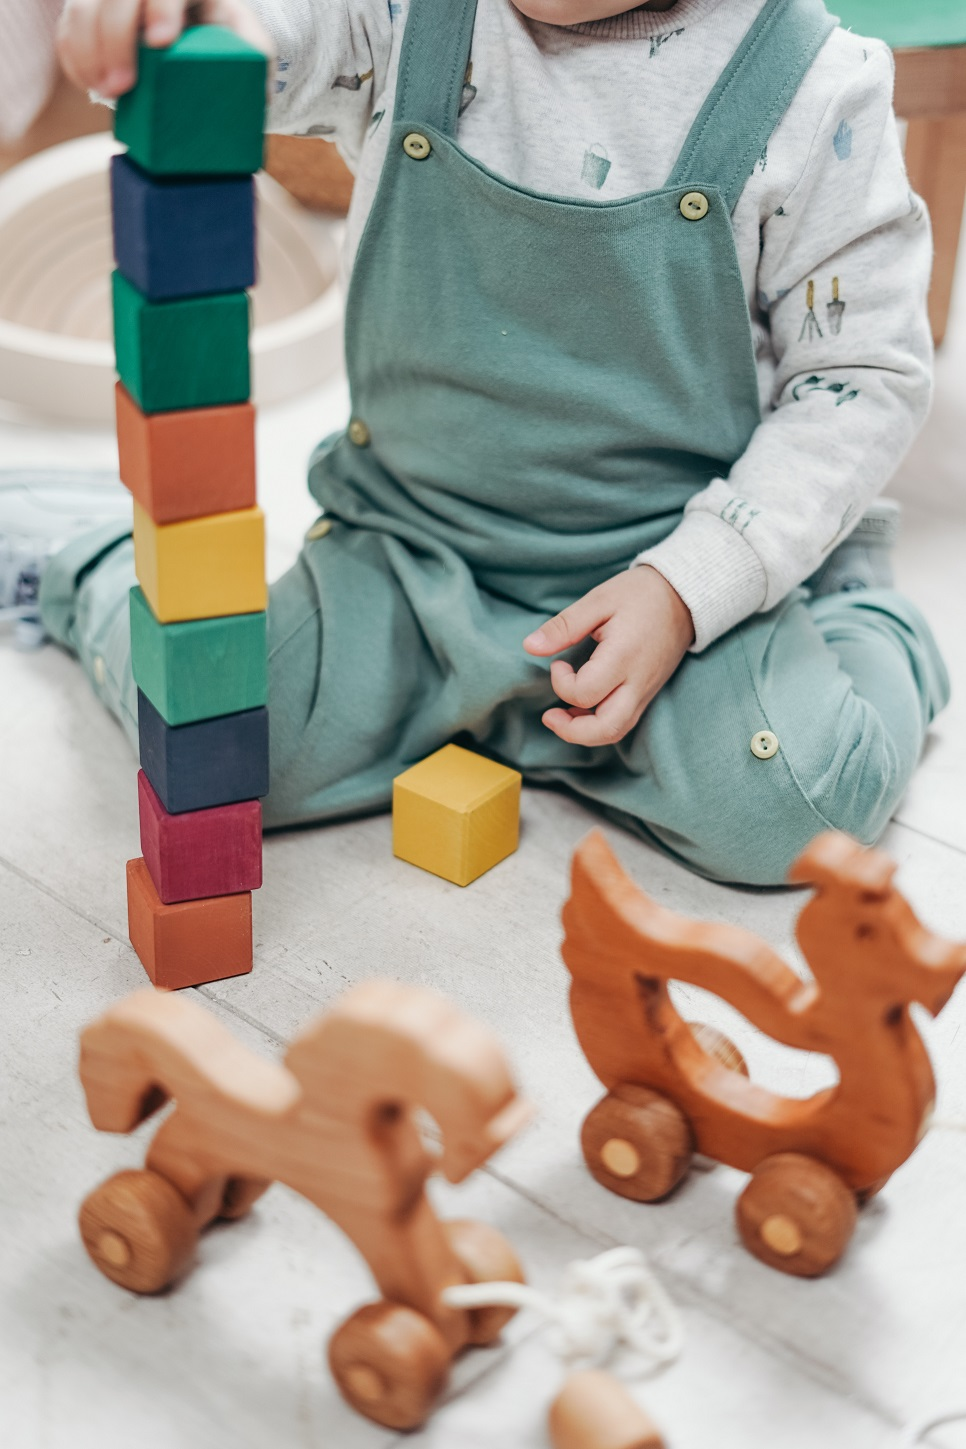 When It's Not Just Anxiety or Depression: The Surprising Prevalence of ADHD in Moms